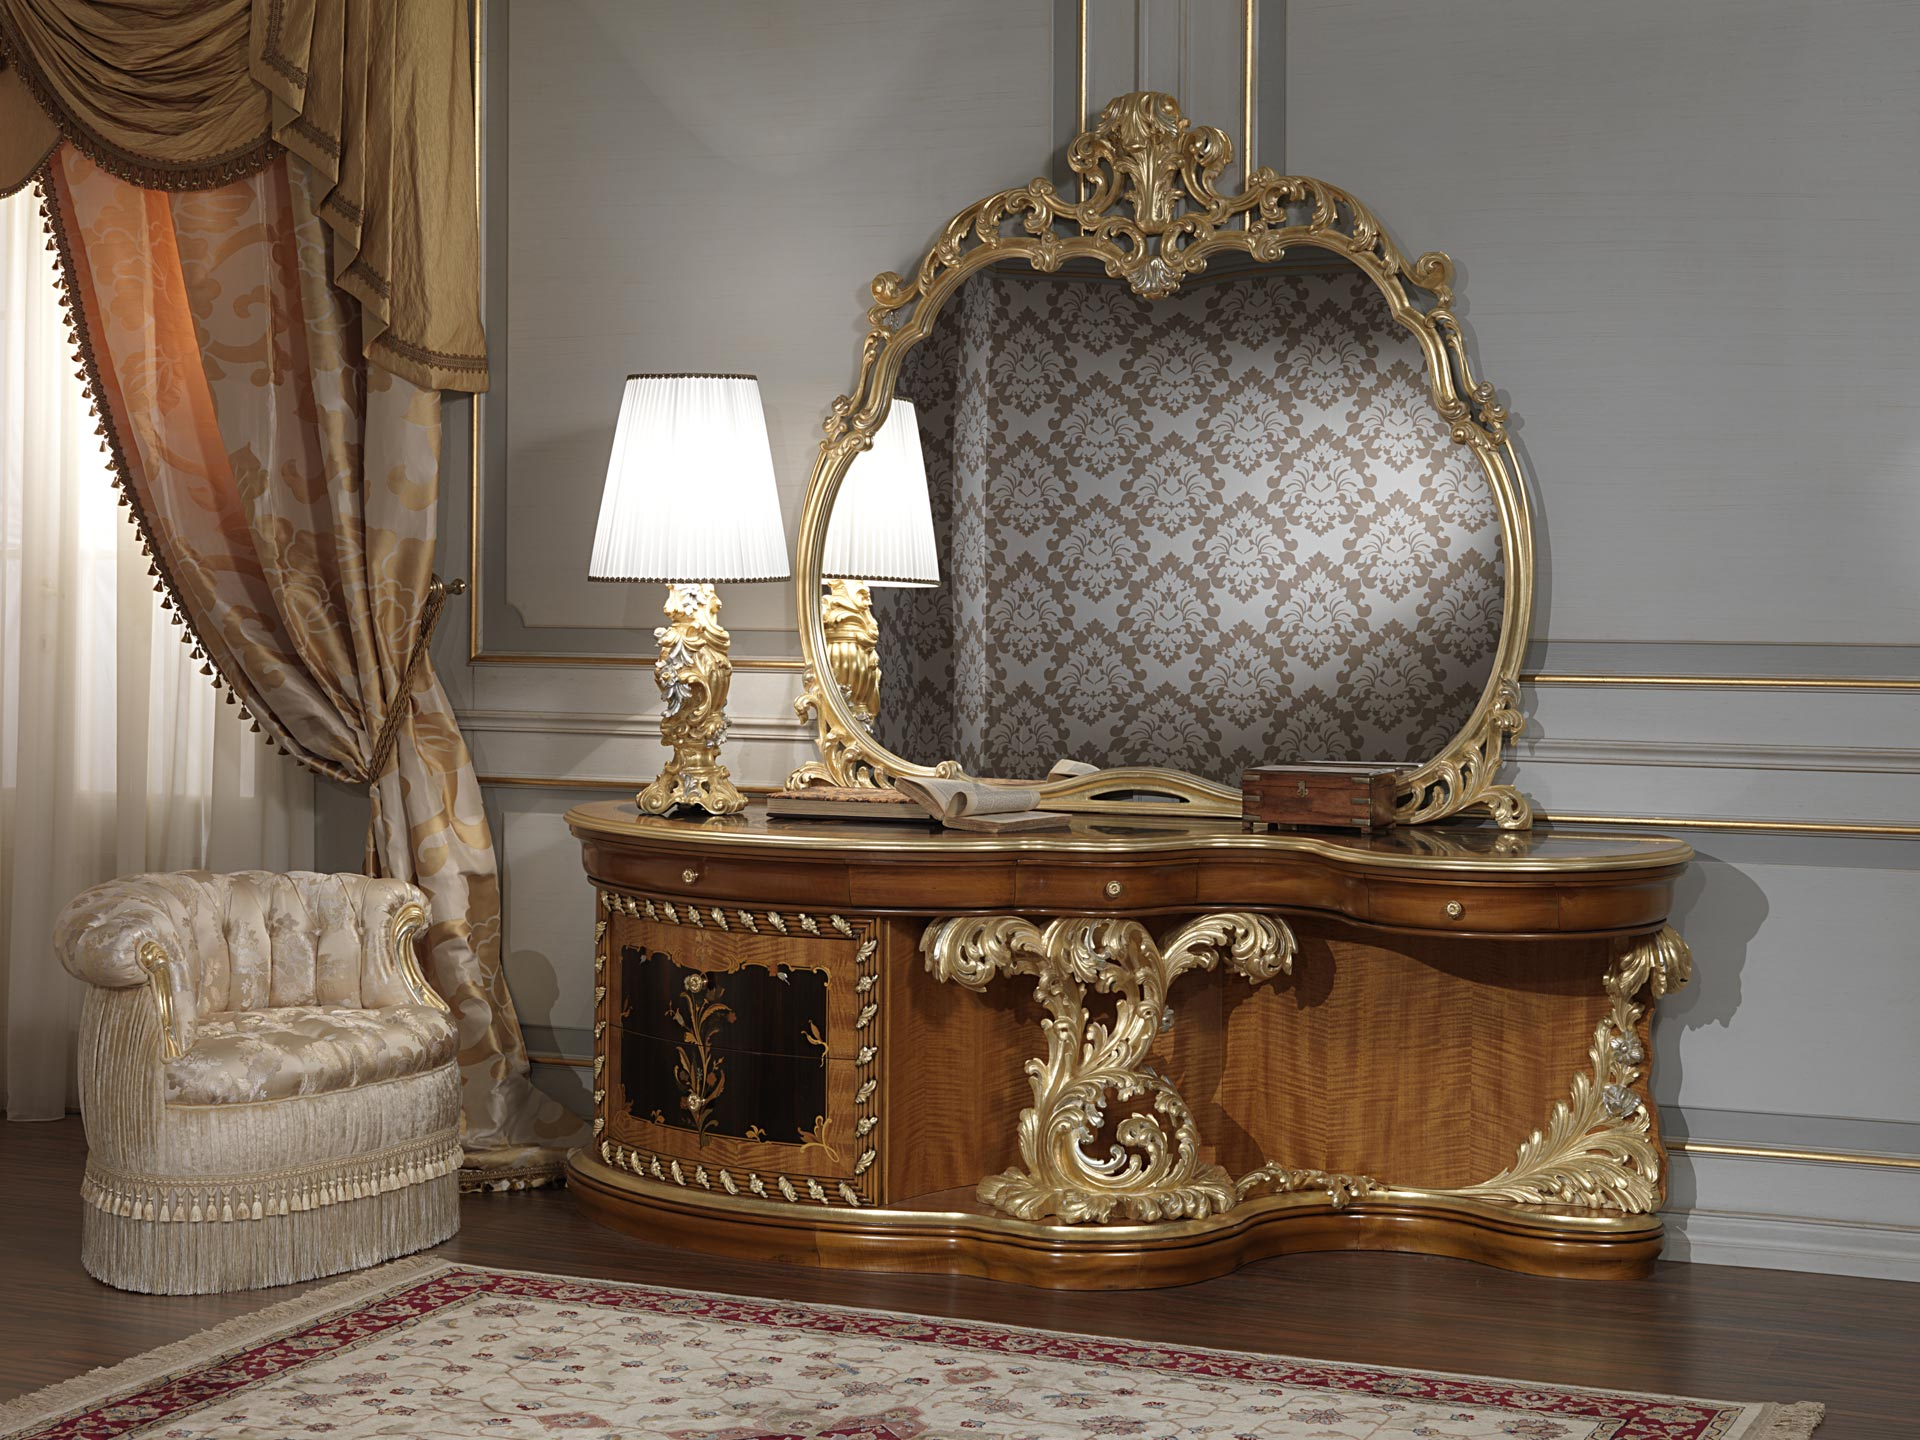 Baroque bedroom furniture art 2012 roman baroque style